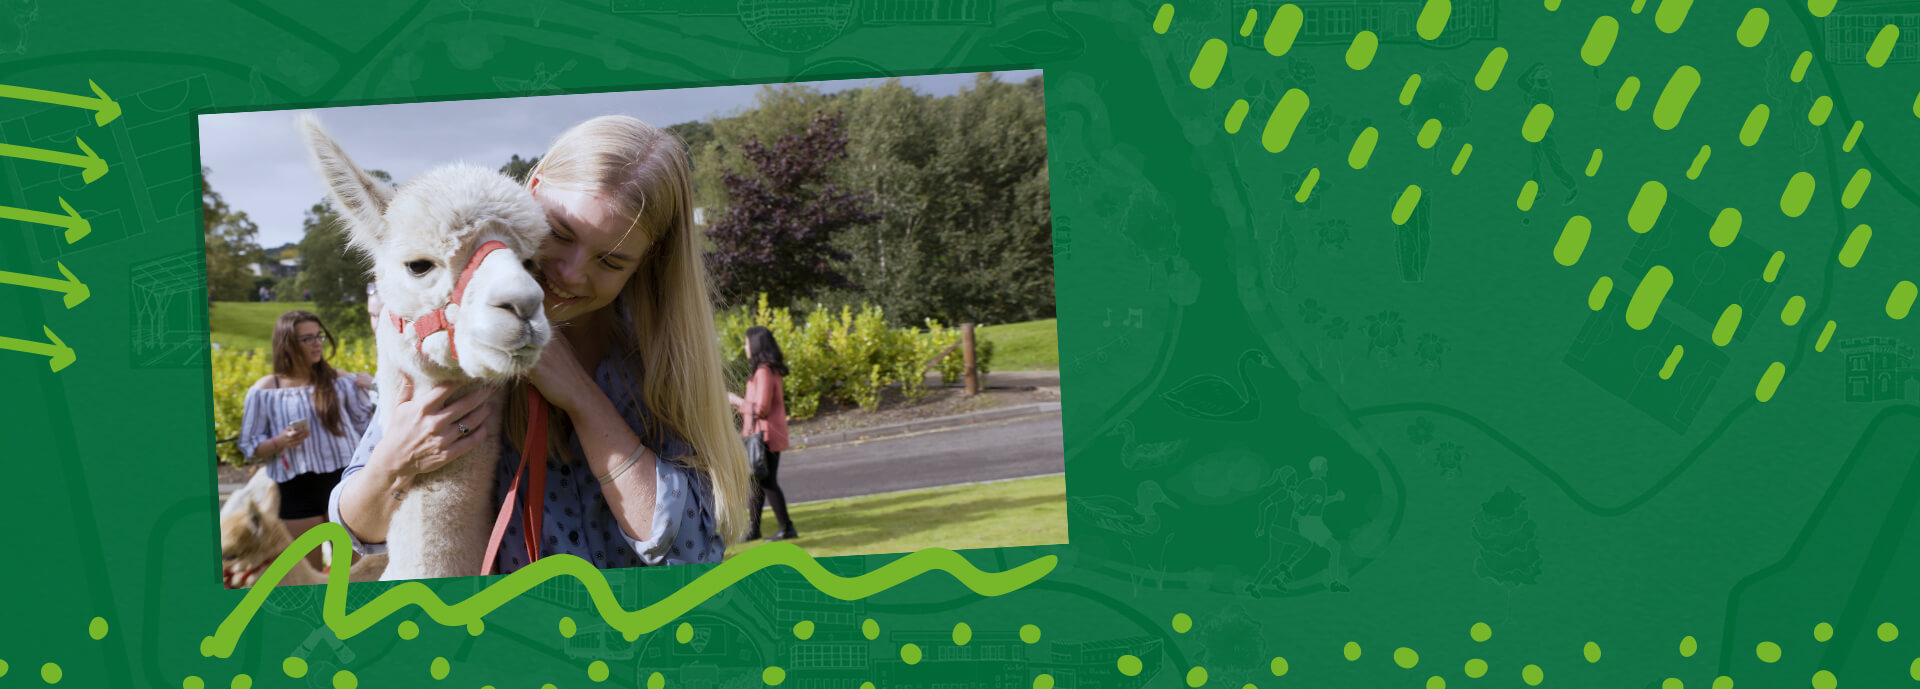 An image of a female student with an alpaca on a graphic, green background